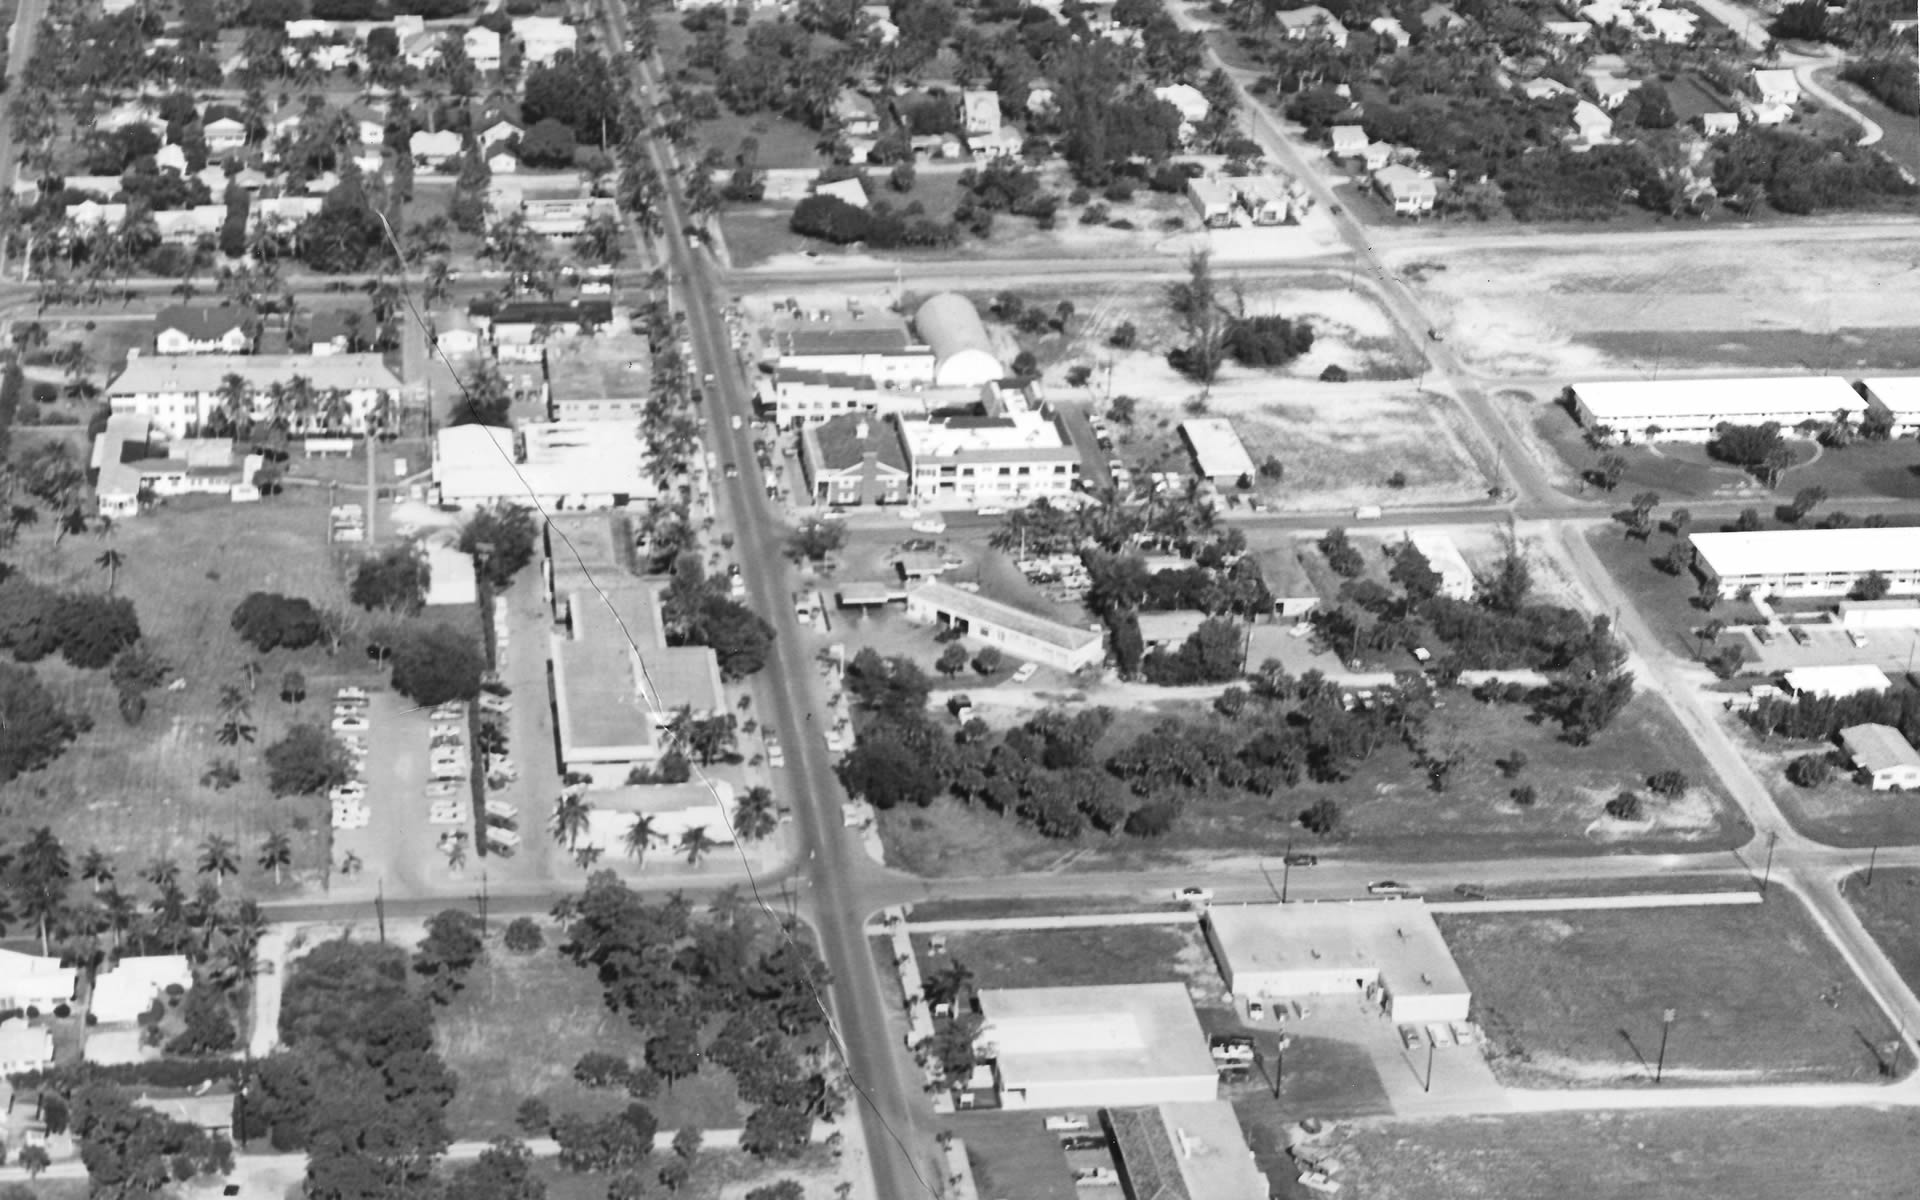 An ariel view of Third Street South in the early 1950's showing The Beach Store and the quonset hut movie theatre (now Marissa's) on the corner of Third and Broad.